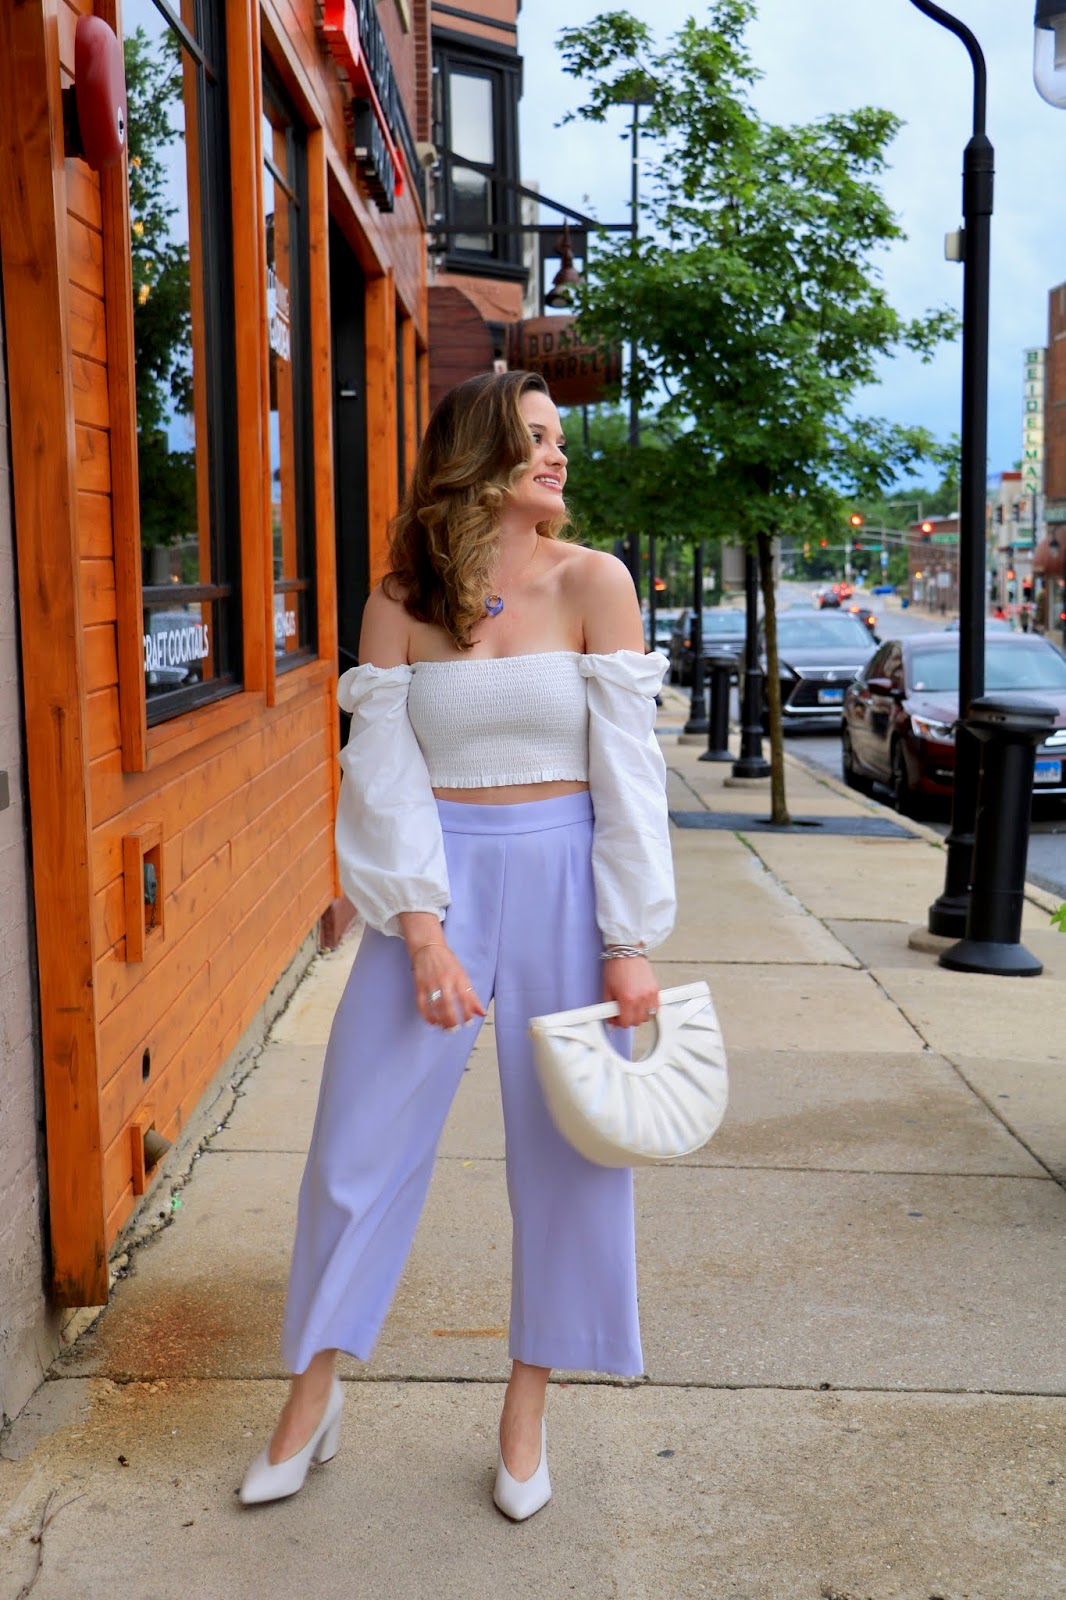 Nyc fashion blogger Kathleen Harper wearing an off-the-shoulder top with high-waisted pants from J.Crew.